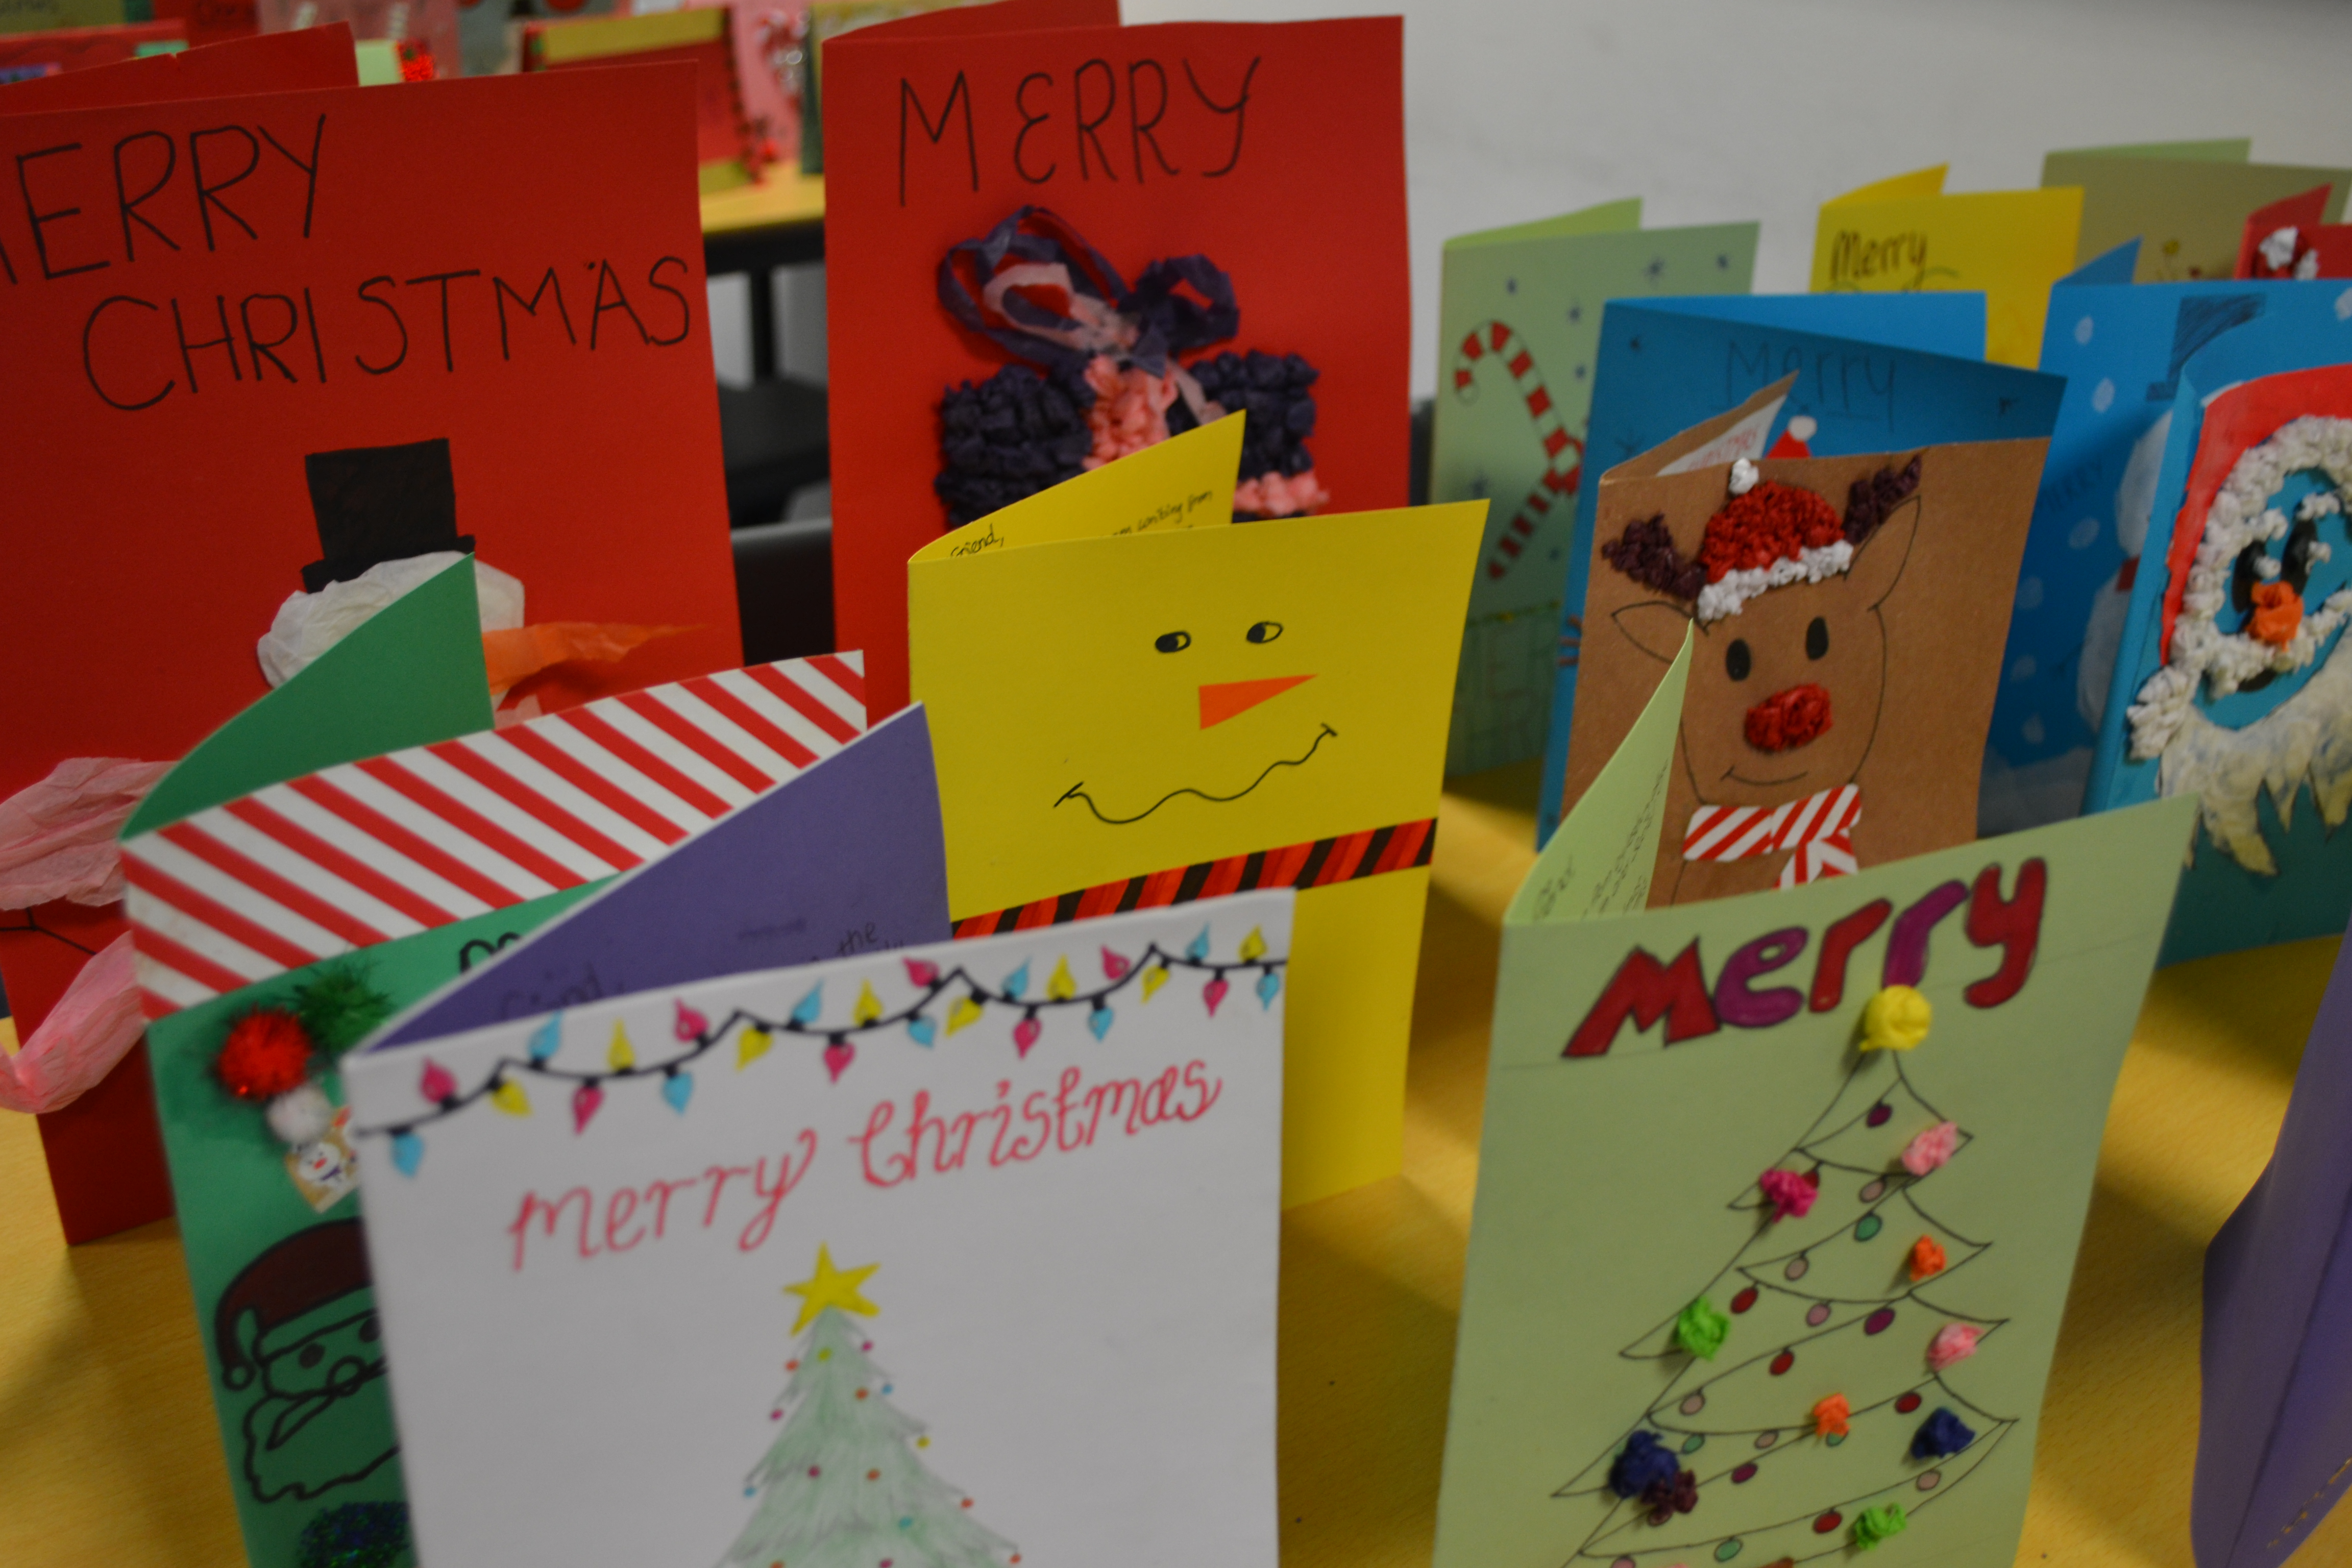 A selection of the students' Christmas cards